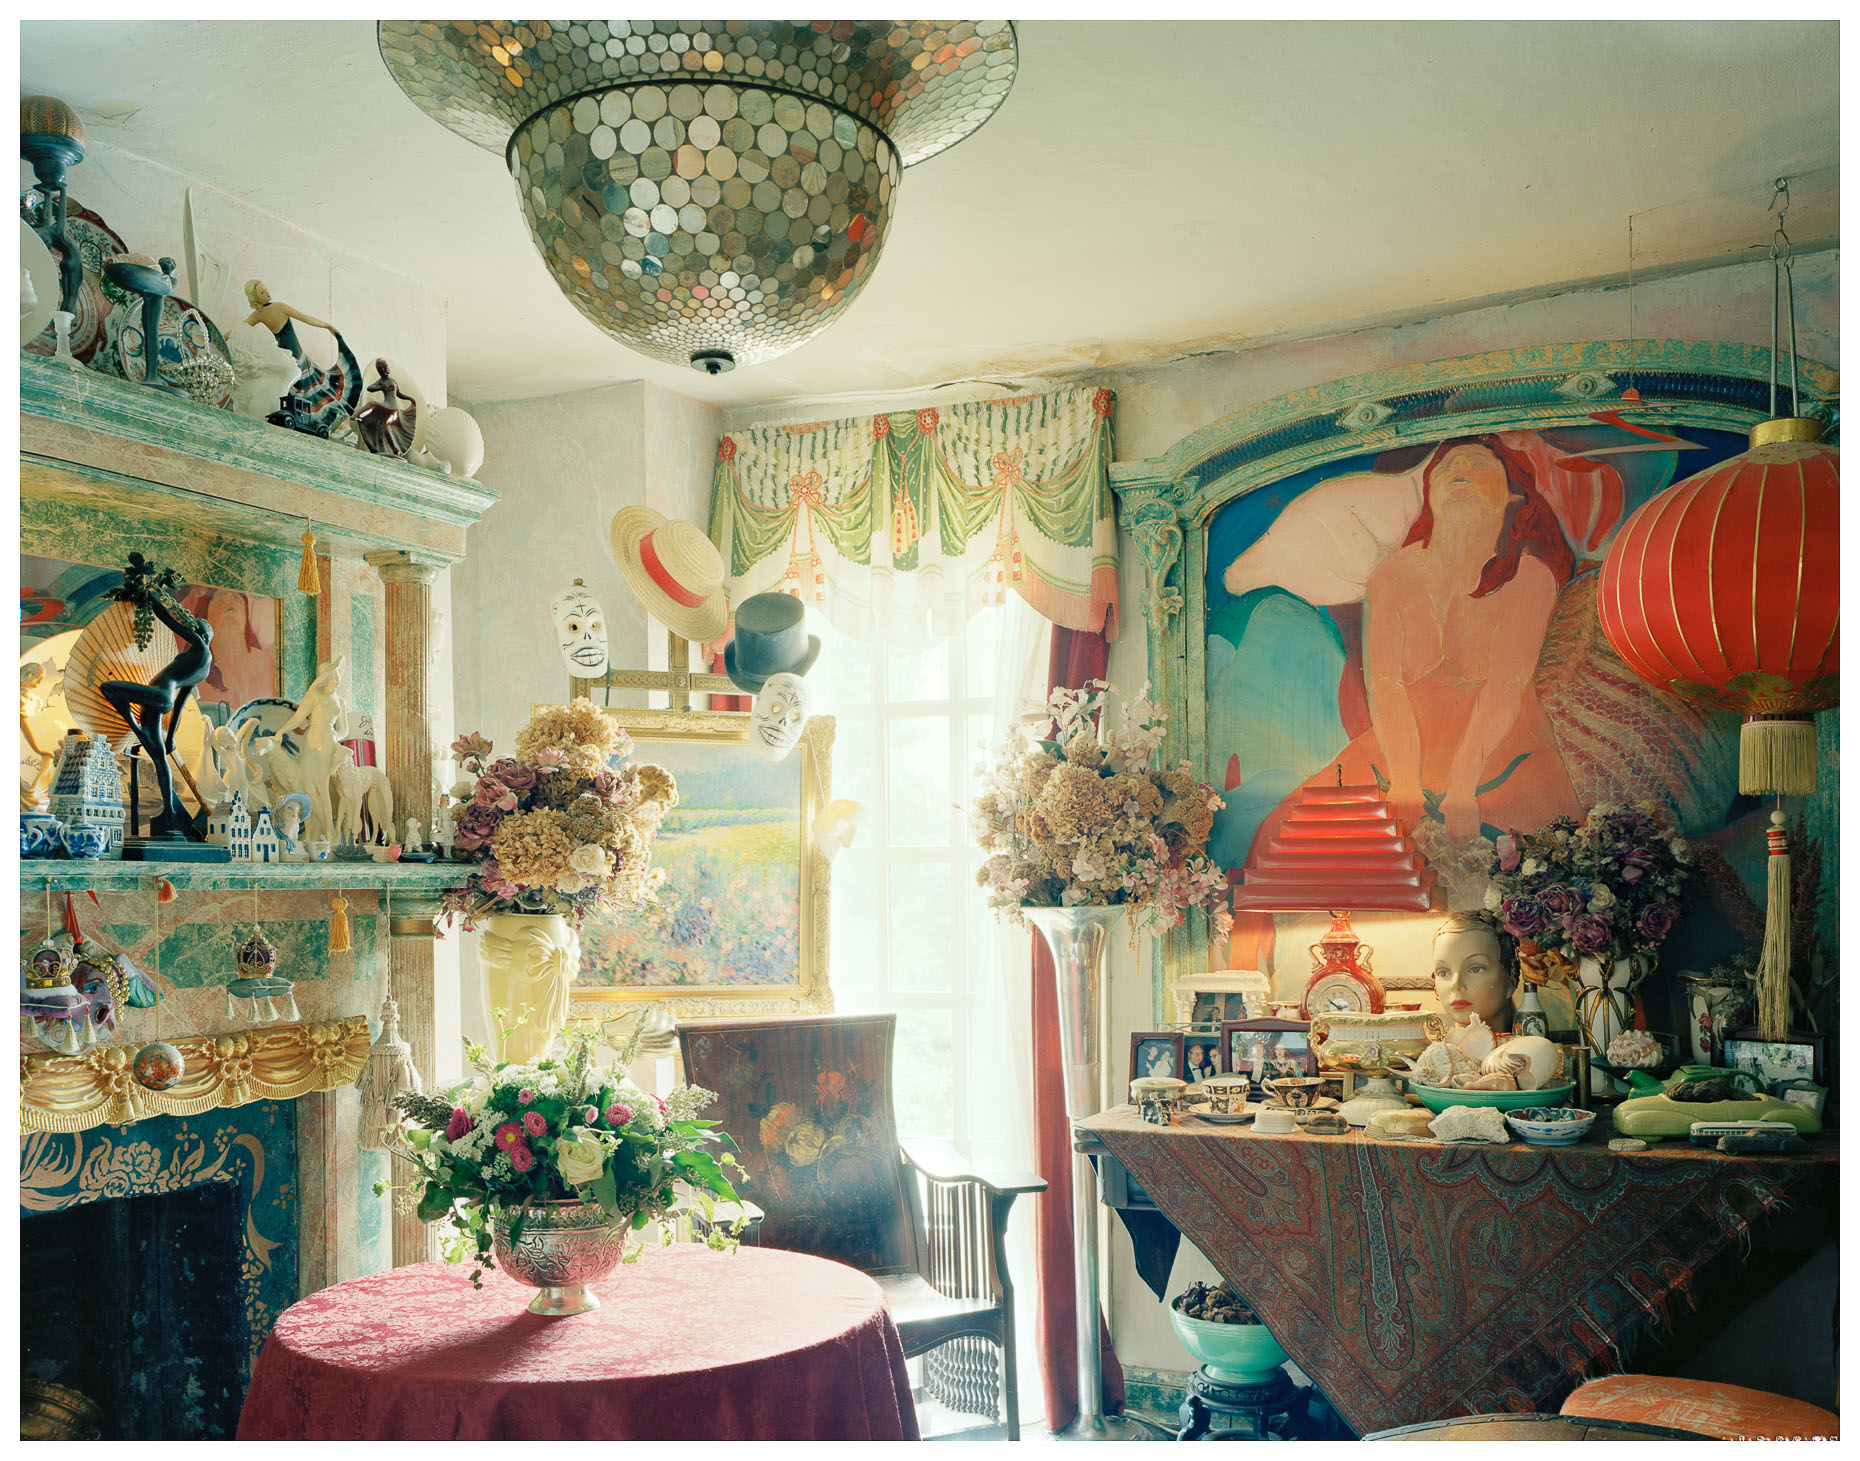 Baltimore Interior of Delores Delux, Vince Peranio | Brian Park Photo New York | 9